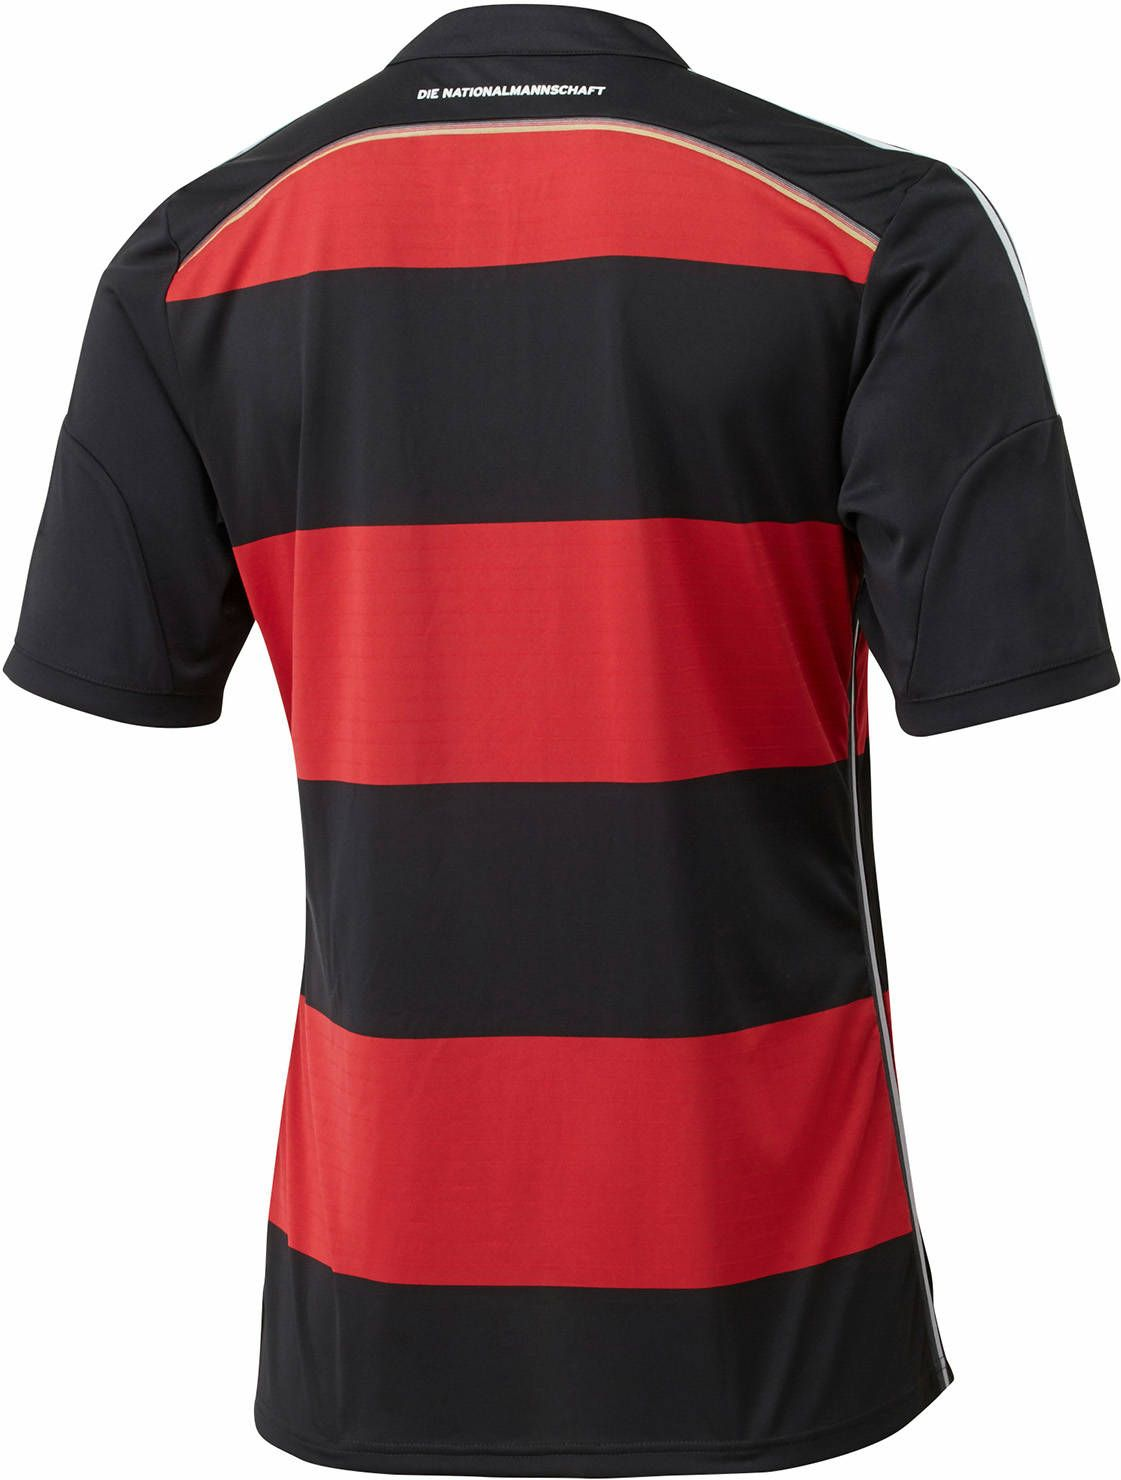 9a7e497ce38 Bild ShopSoccer JerseysAdidasFootballBlueBuy The new Germany 2014 Away Kit  comes with large dark red horizontal hoops.